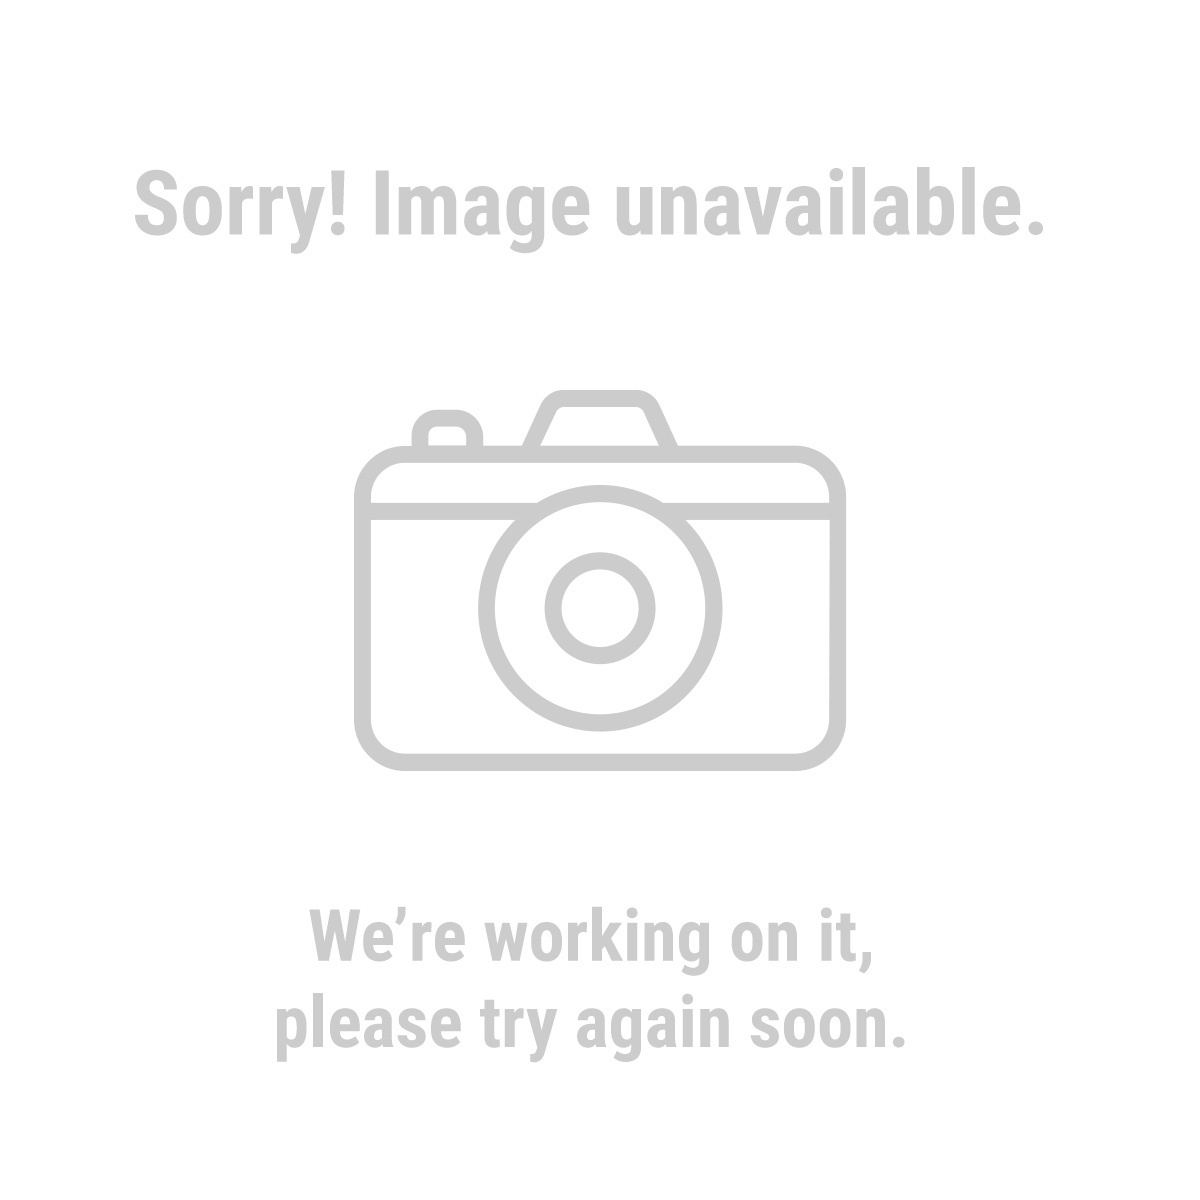 Greenwood 62177 Trigger Spray Nozzle